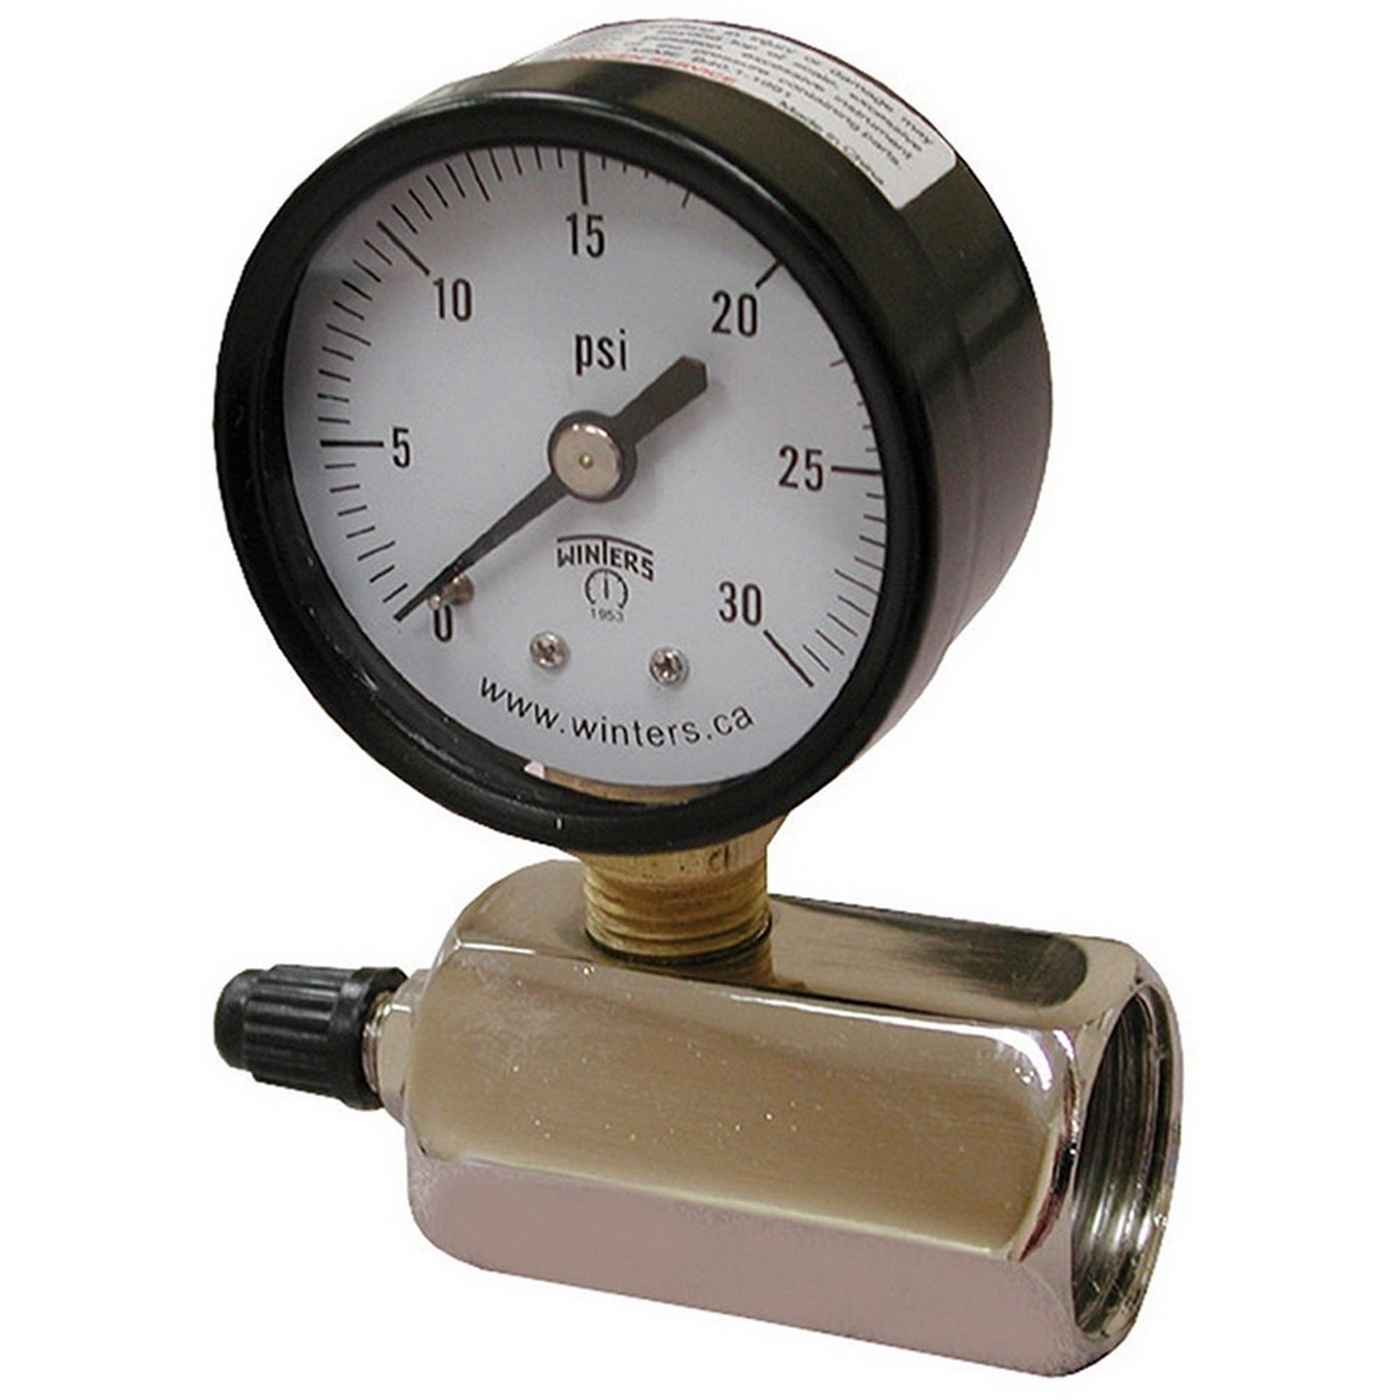 Steel Gas Test Gauge Assembly, 0 - 160 psi, 2 in Dial, 3/4 in FIP